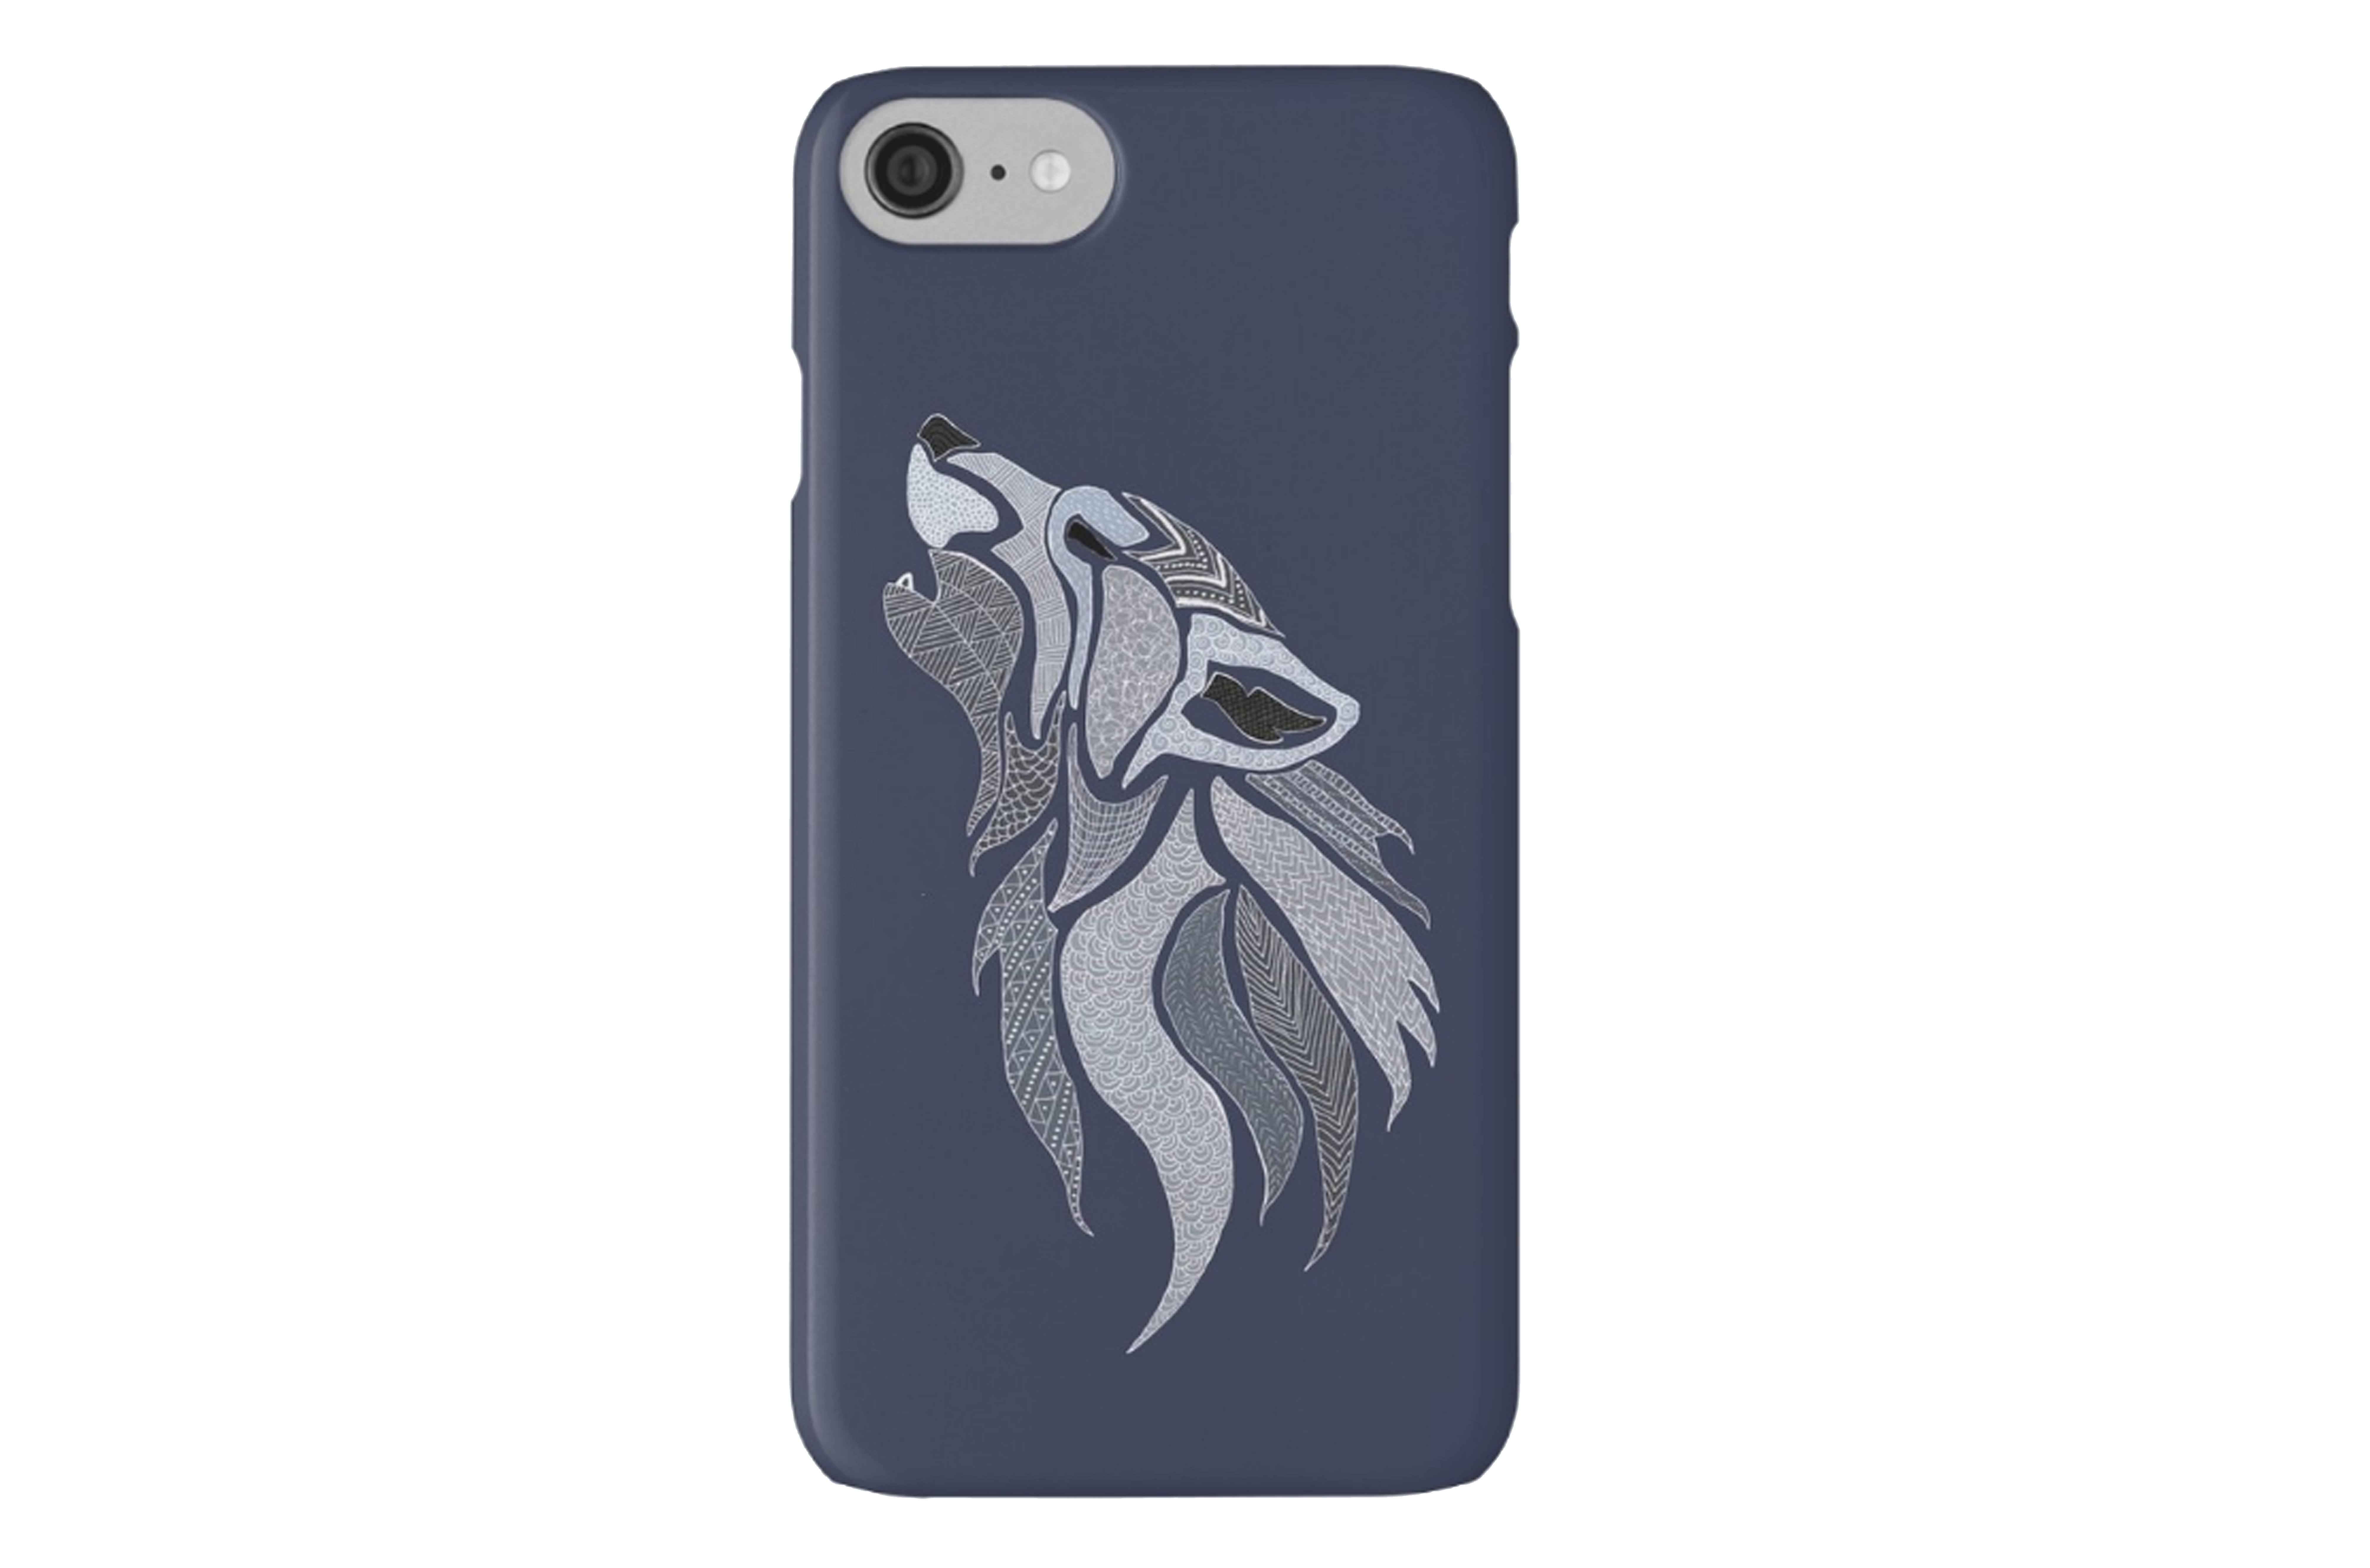 iphone & samsung cases/skins